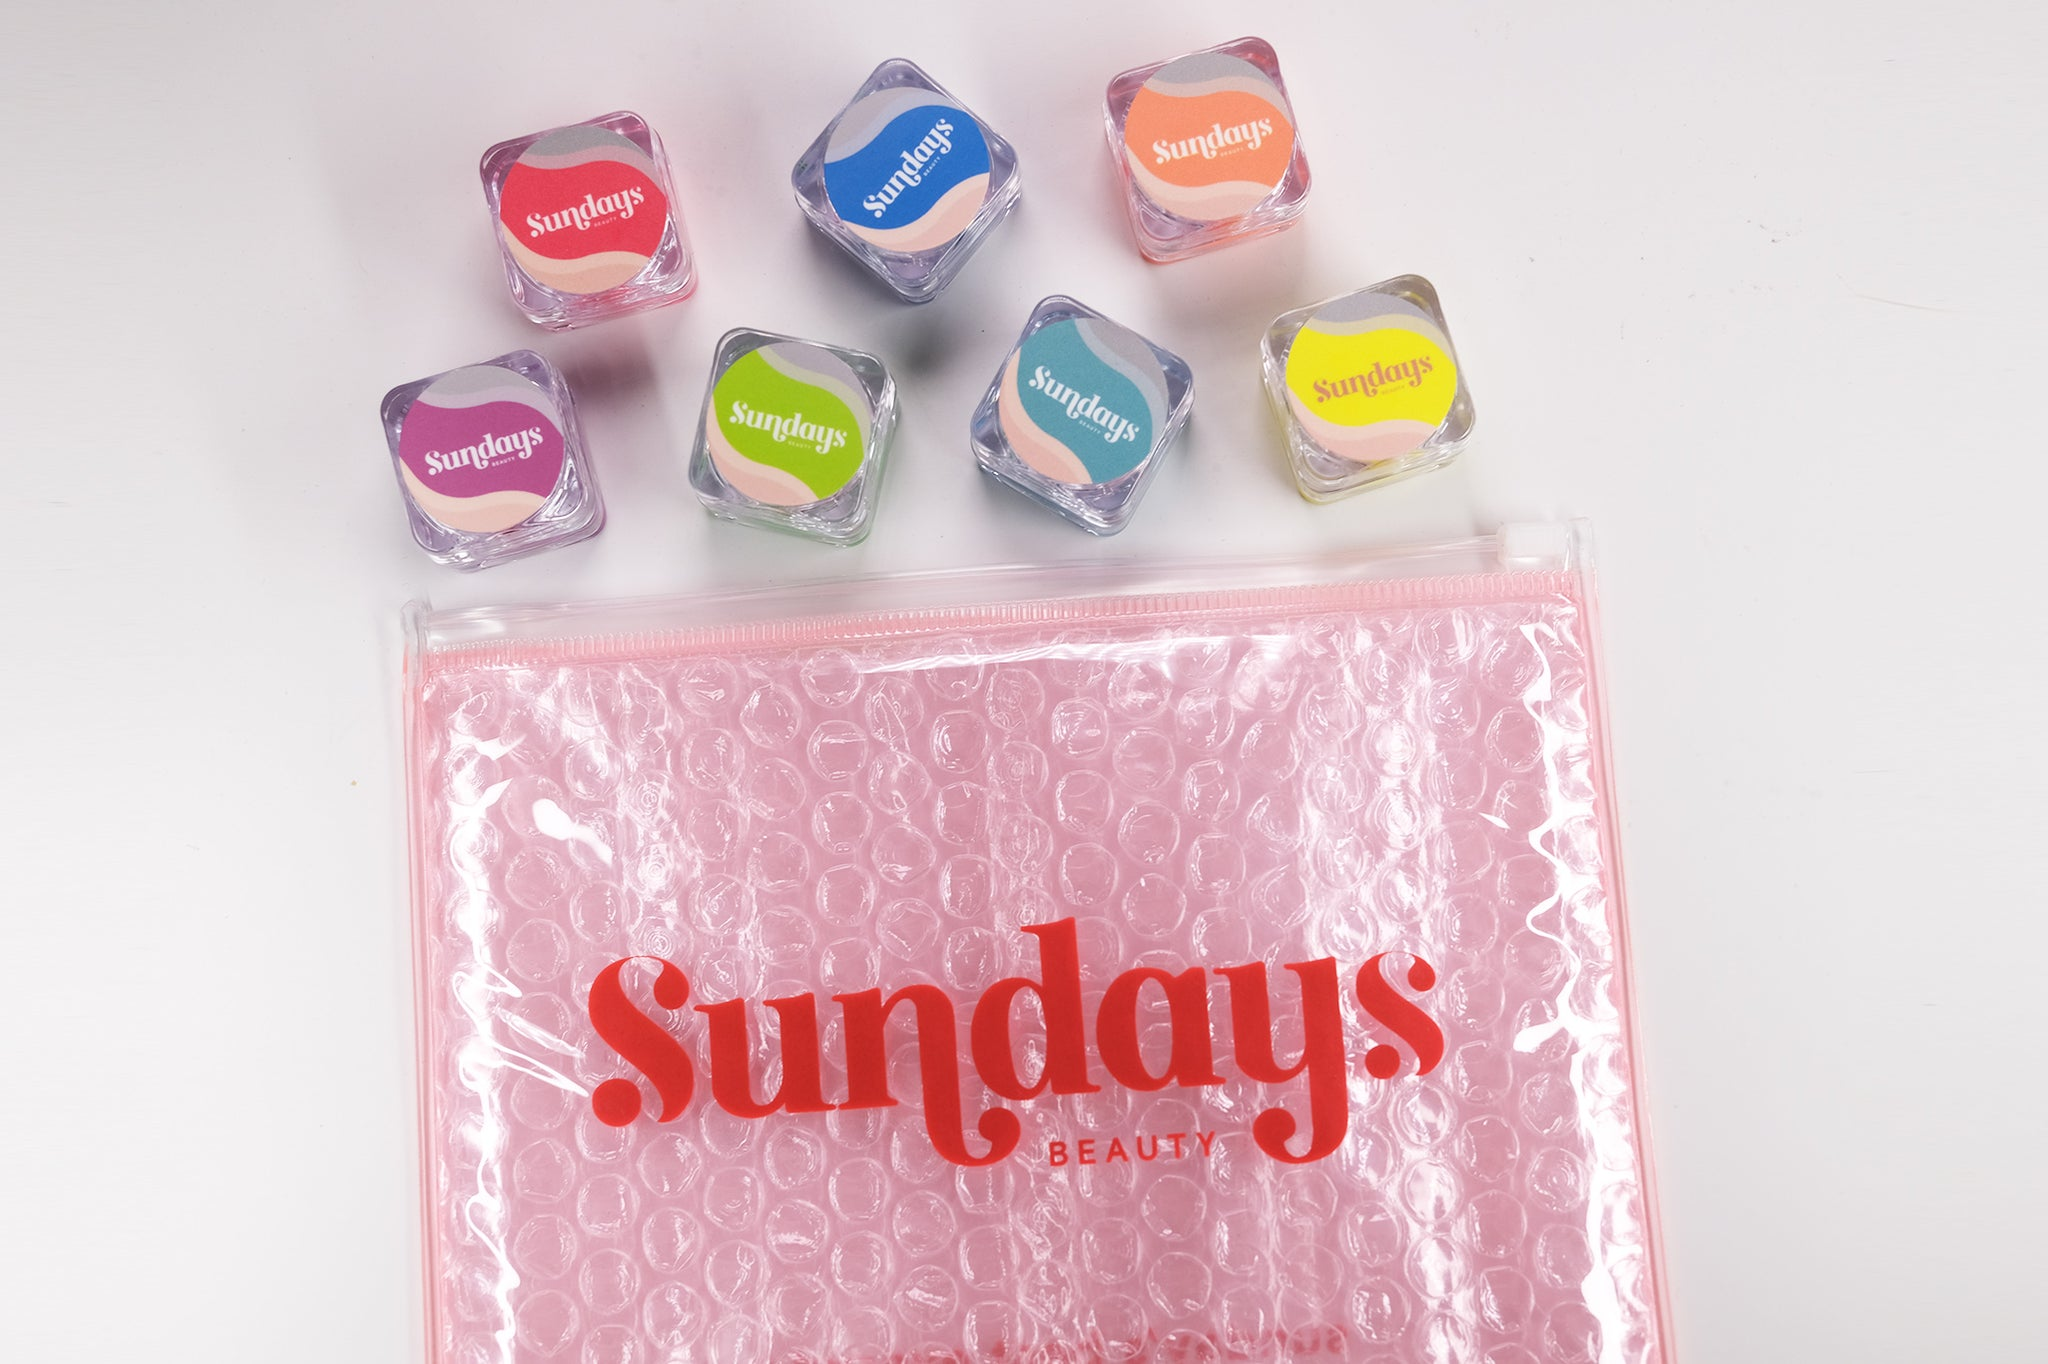 Sundays Meteor Liners Build Your Own Bundles (Pastels & Neons Only)